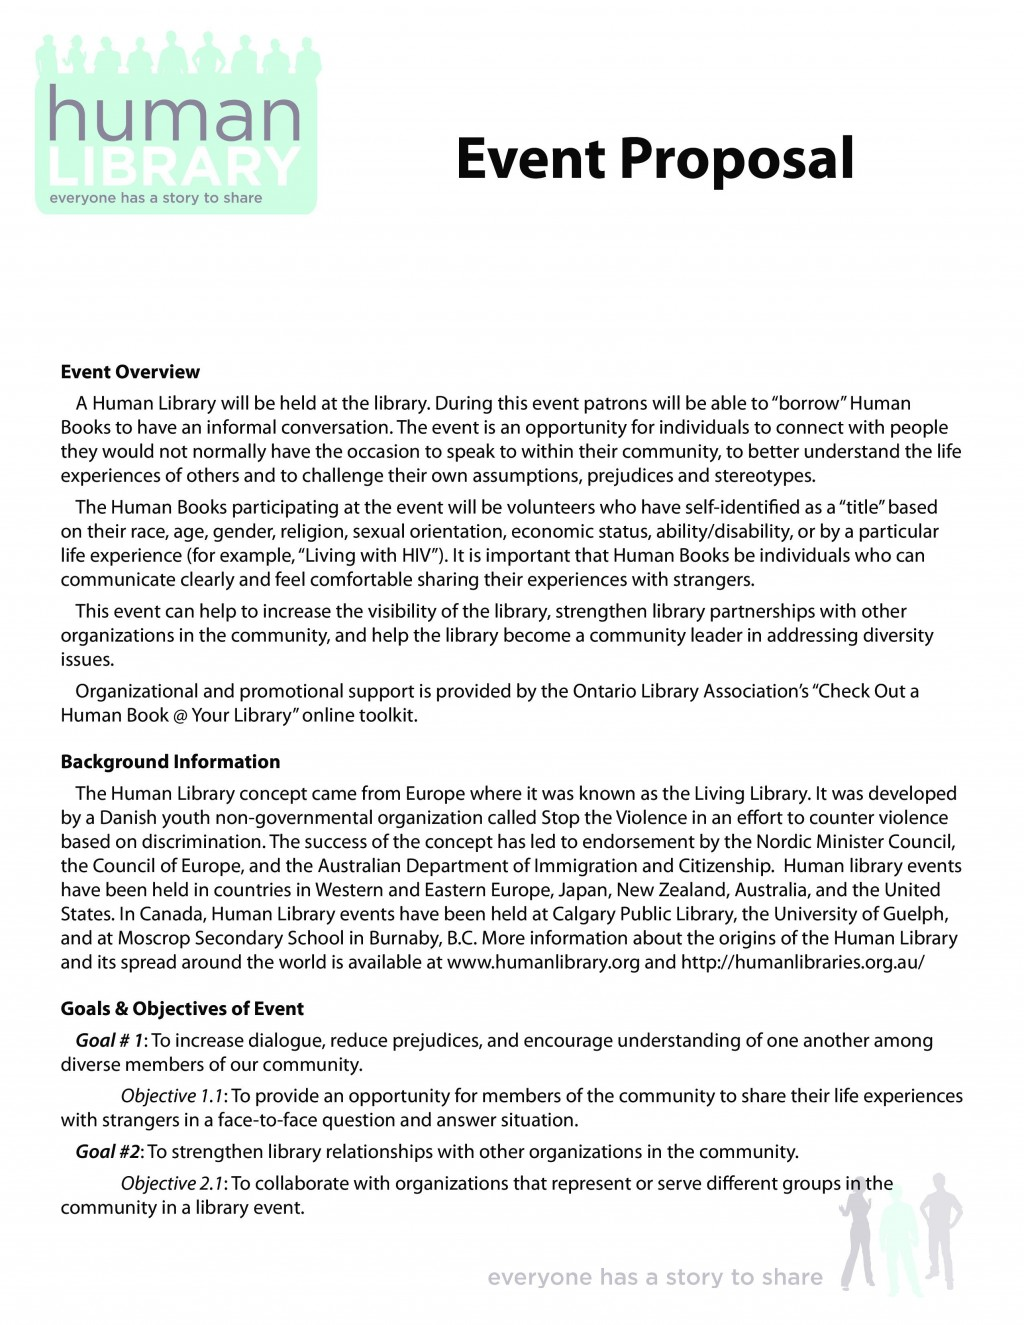 004 Fascinating Event Sponsorship Proposal Template High Def  Free Ppt Music PdfLarge